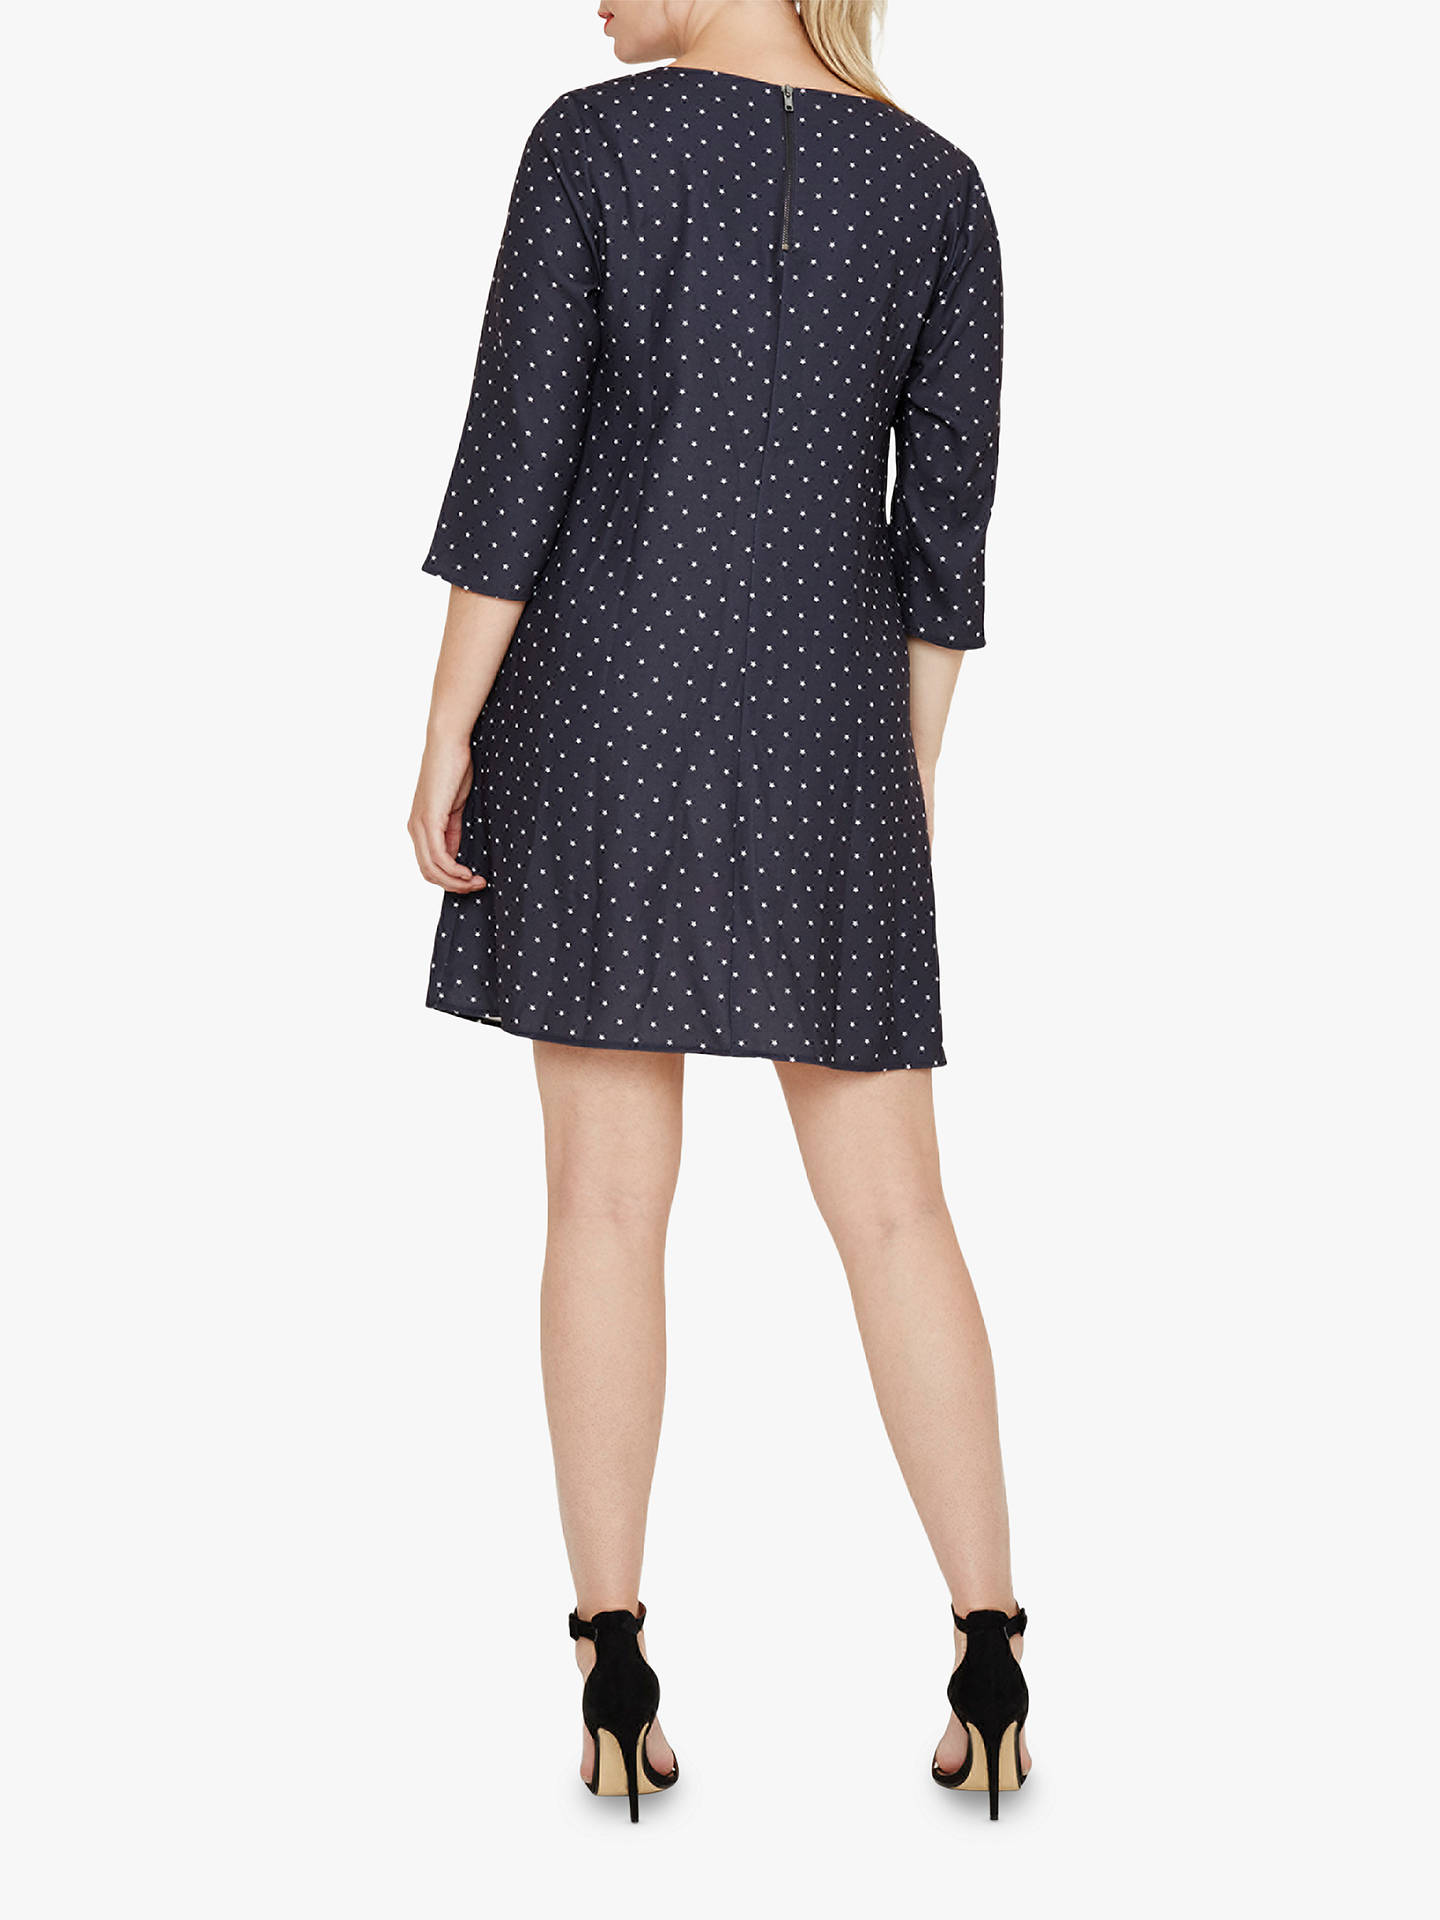 BuyStudio 8 Fia Star Dress, Grey, 14 Online at johnlewis.com